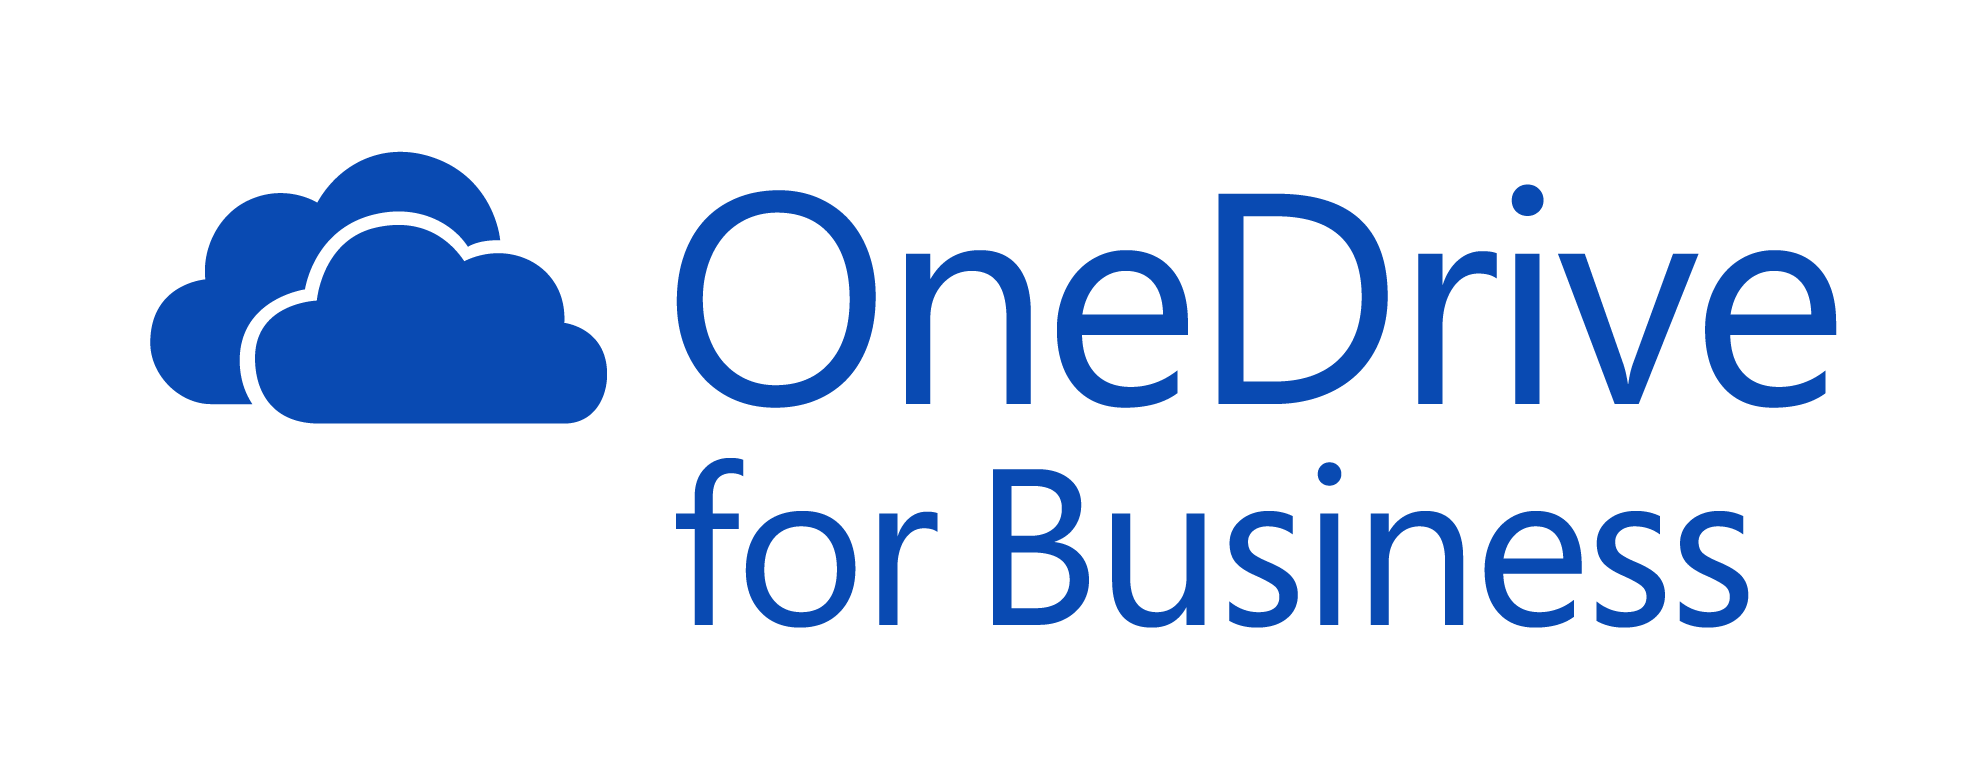 Onedrive Business Logo